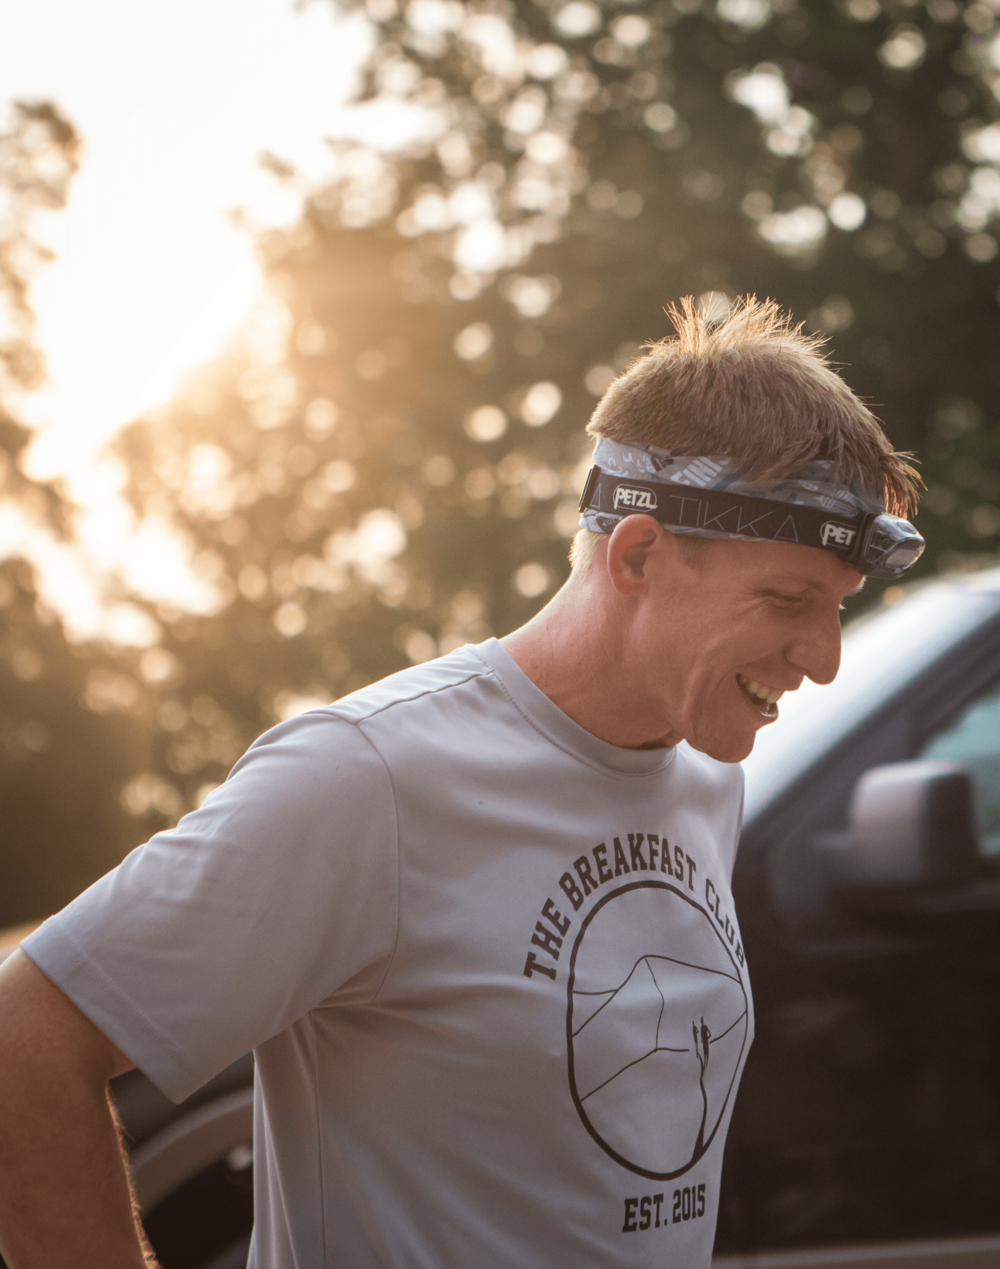 A beautiful sunrise greeted runners at the finish line on Sunday morning. Pictured here is 2nd place finisher Adam Rood. Photo by Clary Estes